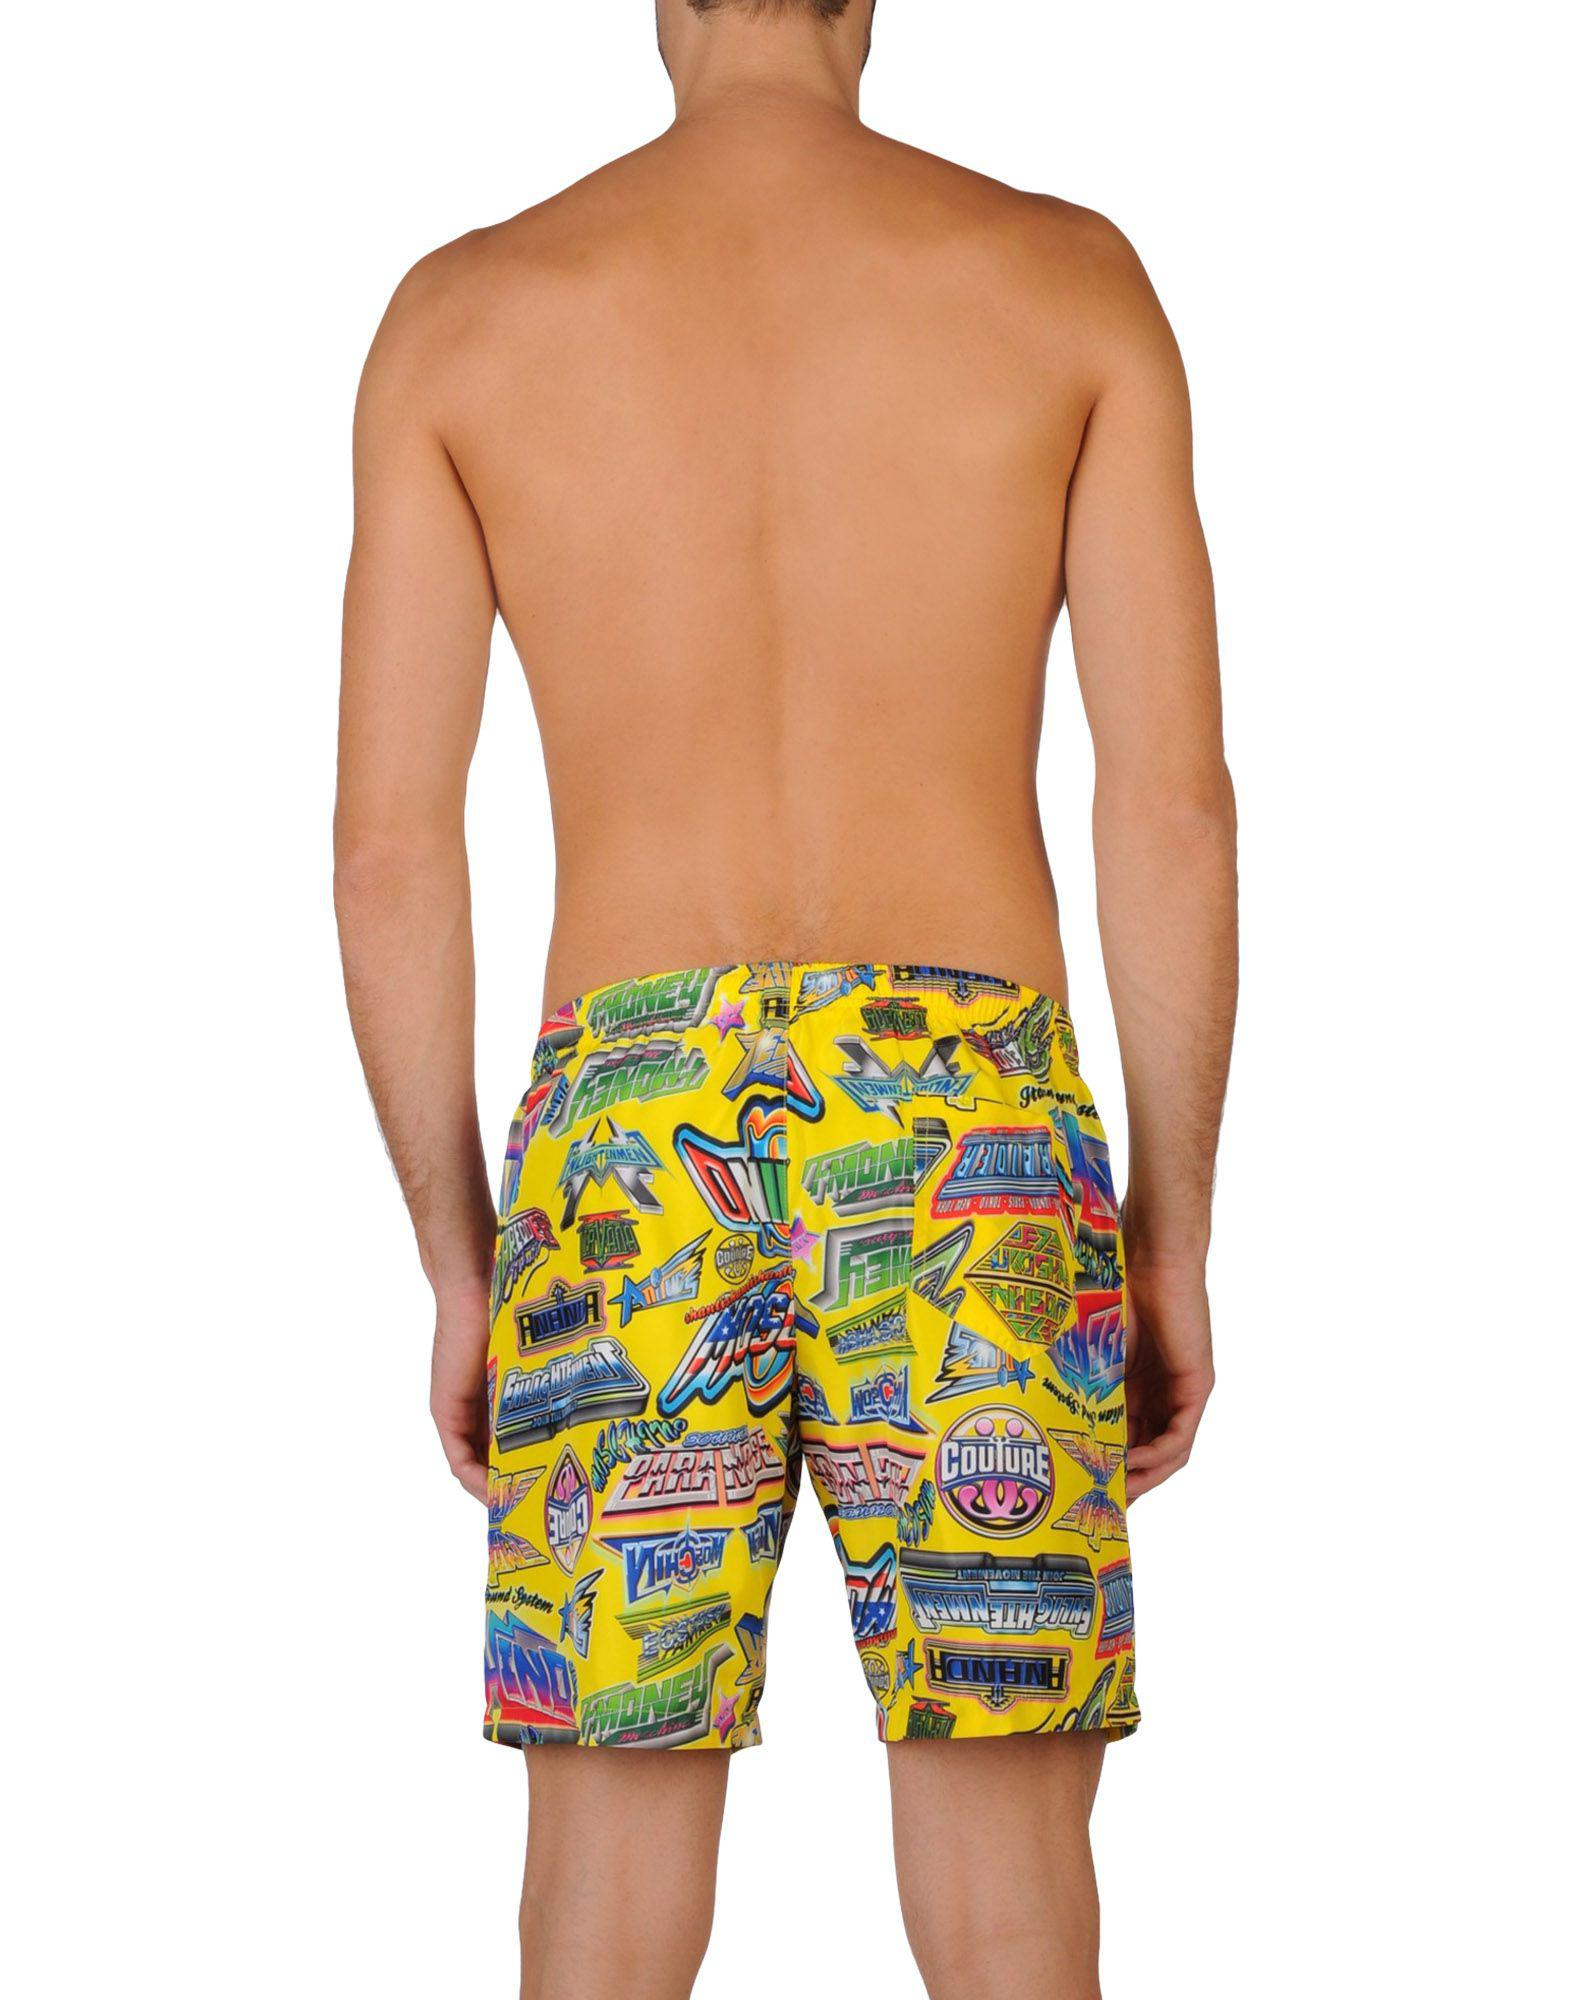 52cf650fe9 Lyst - Moschino Swimwear For Men in Yellow for Men - Save 6%